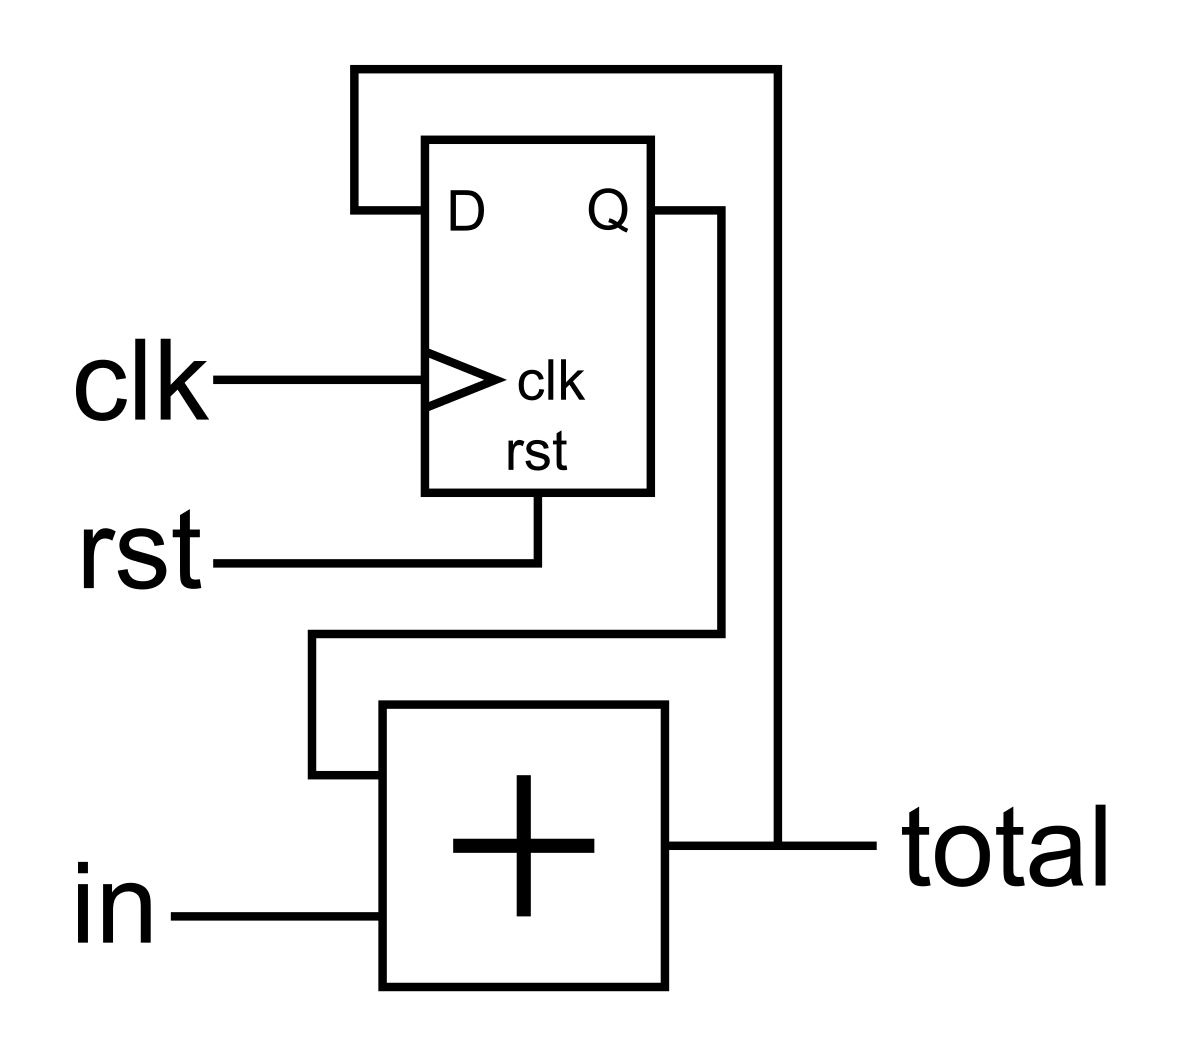 4 Sequential Logic Learning Fpgas Book T Flip Flop Circuit Diagram Running Total With Dff